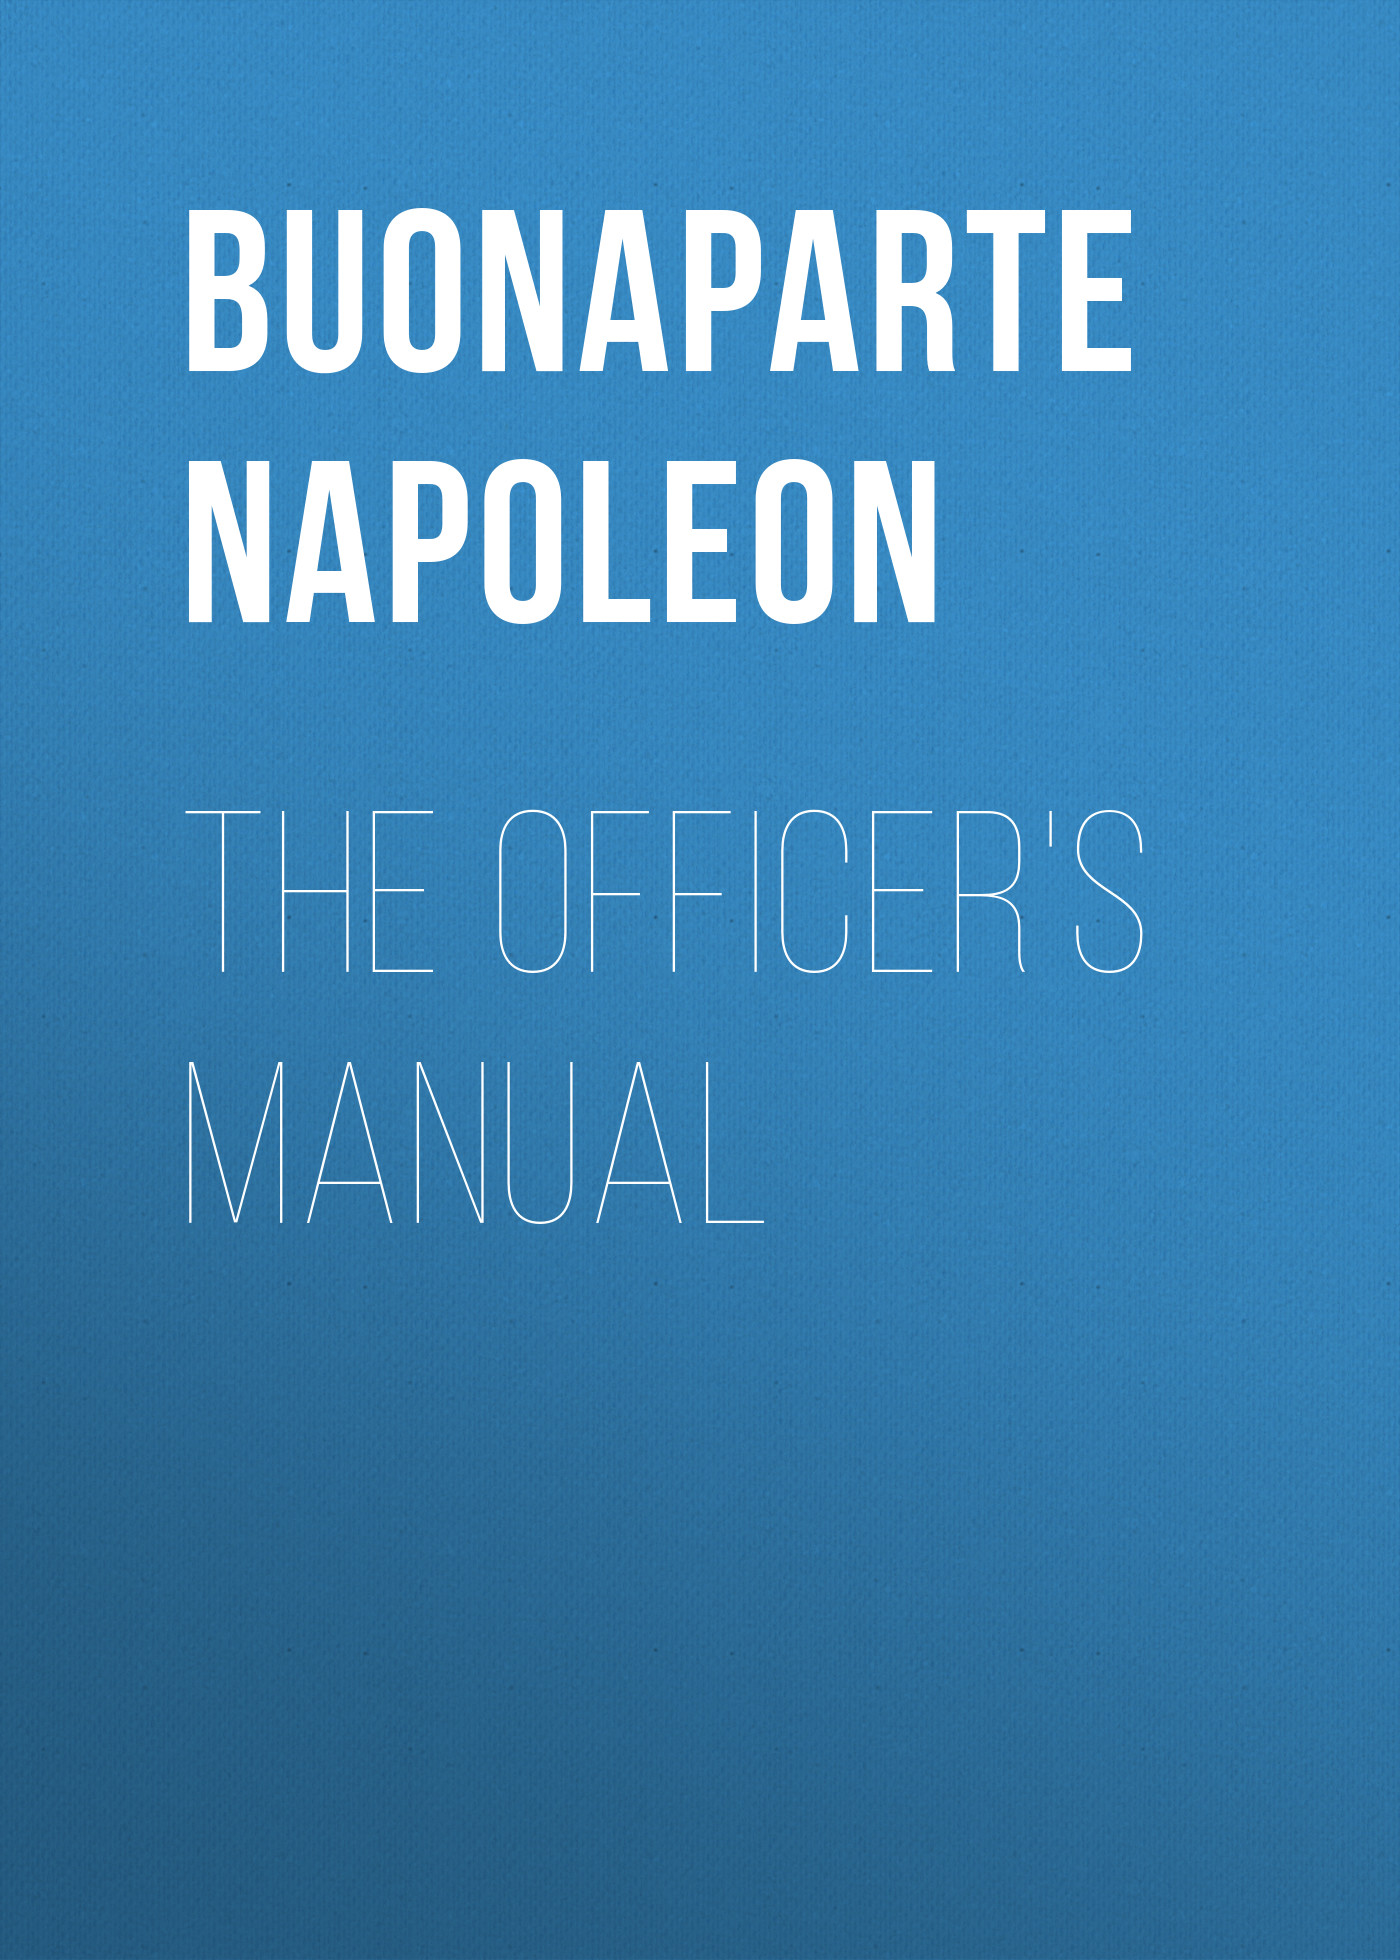 Buonaparte Napoleon The Officer's Manual keihin carburetor keihin motorcycle carburetor keihin pz30 manual damper free shipping